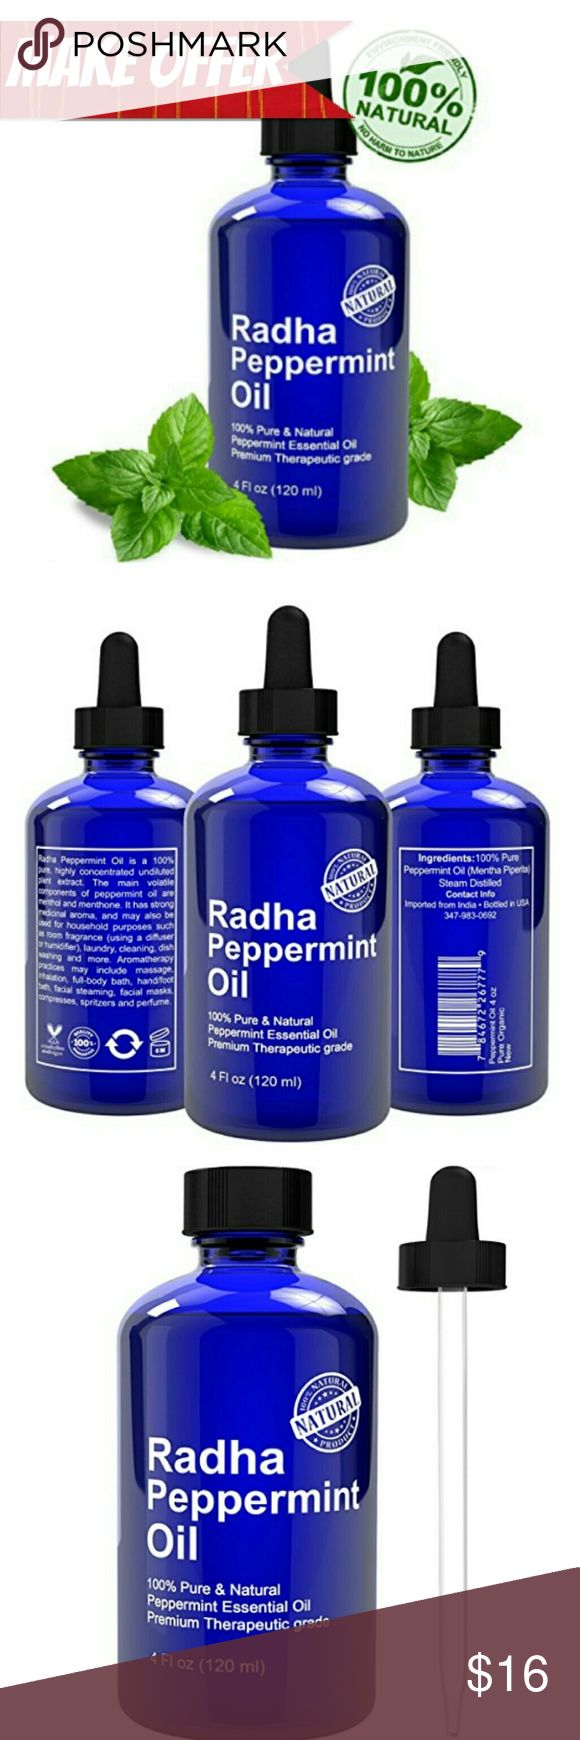 100% Pure Peppermint Oil Essential 100% Pure & Natural Essential Oil Therapeutic Grade- Steam distilled  Great mice and spider repellent - Use it around the house to keep bugs, insects, mice and spiders away Great for Headaches and many more things!  Great for Aromatherapy; Add a few drops of Radha Peppermint Oil into your oil diffuser to refresh the room with the crisp scent of Peppermint Oil Other